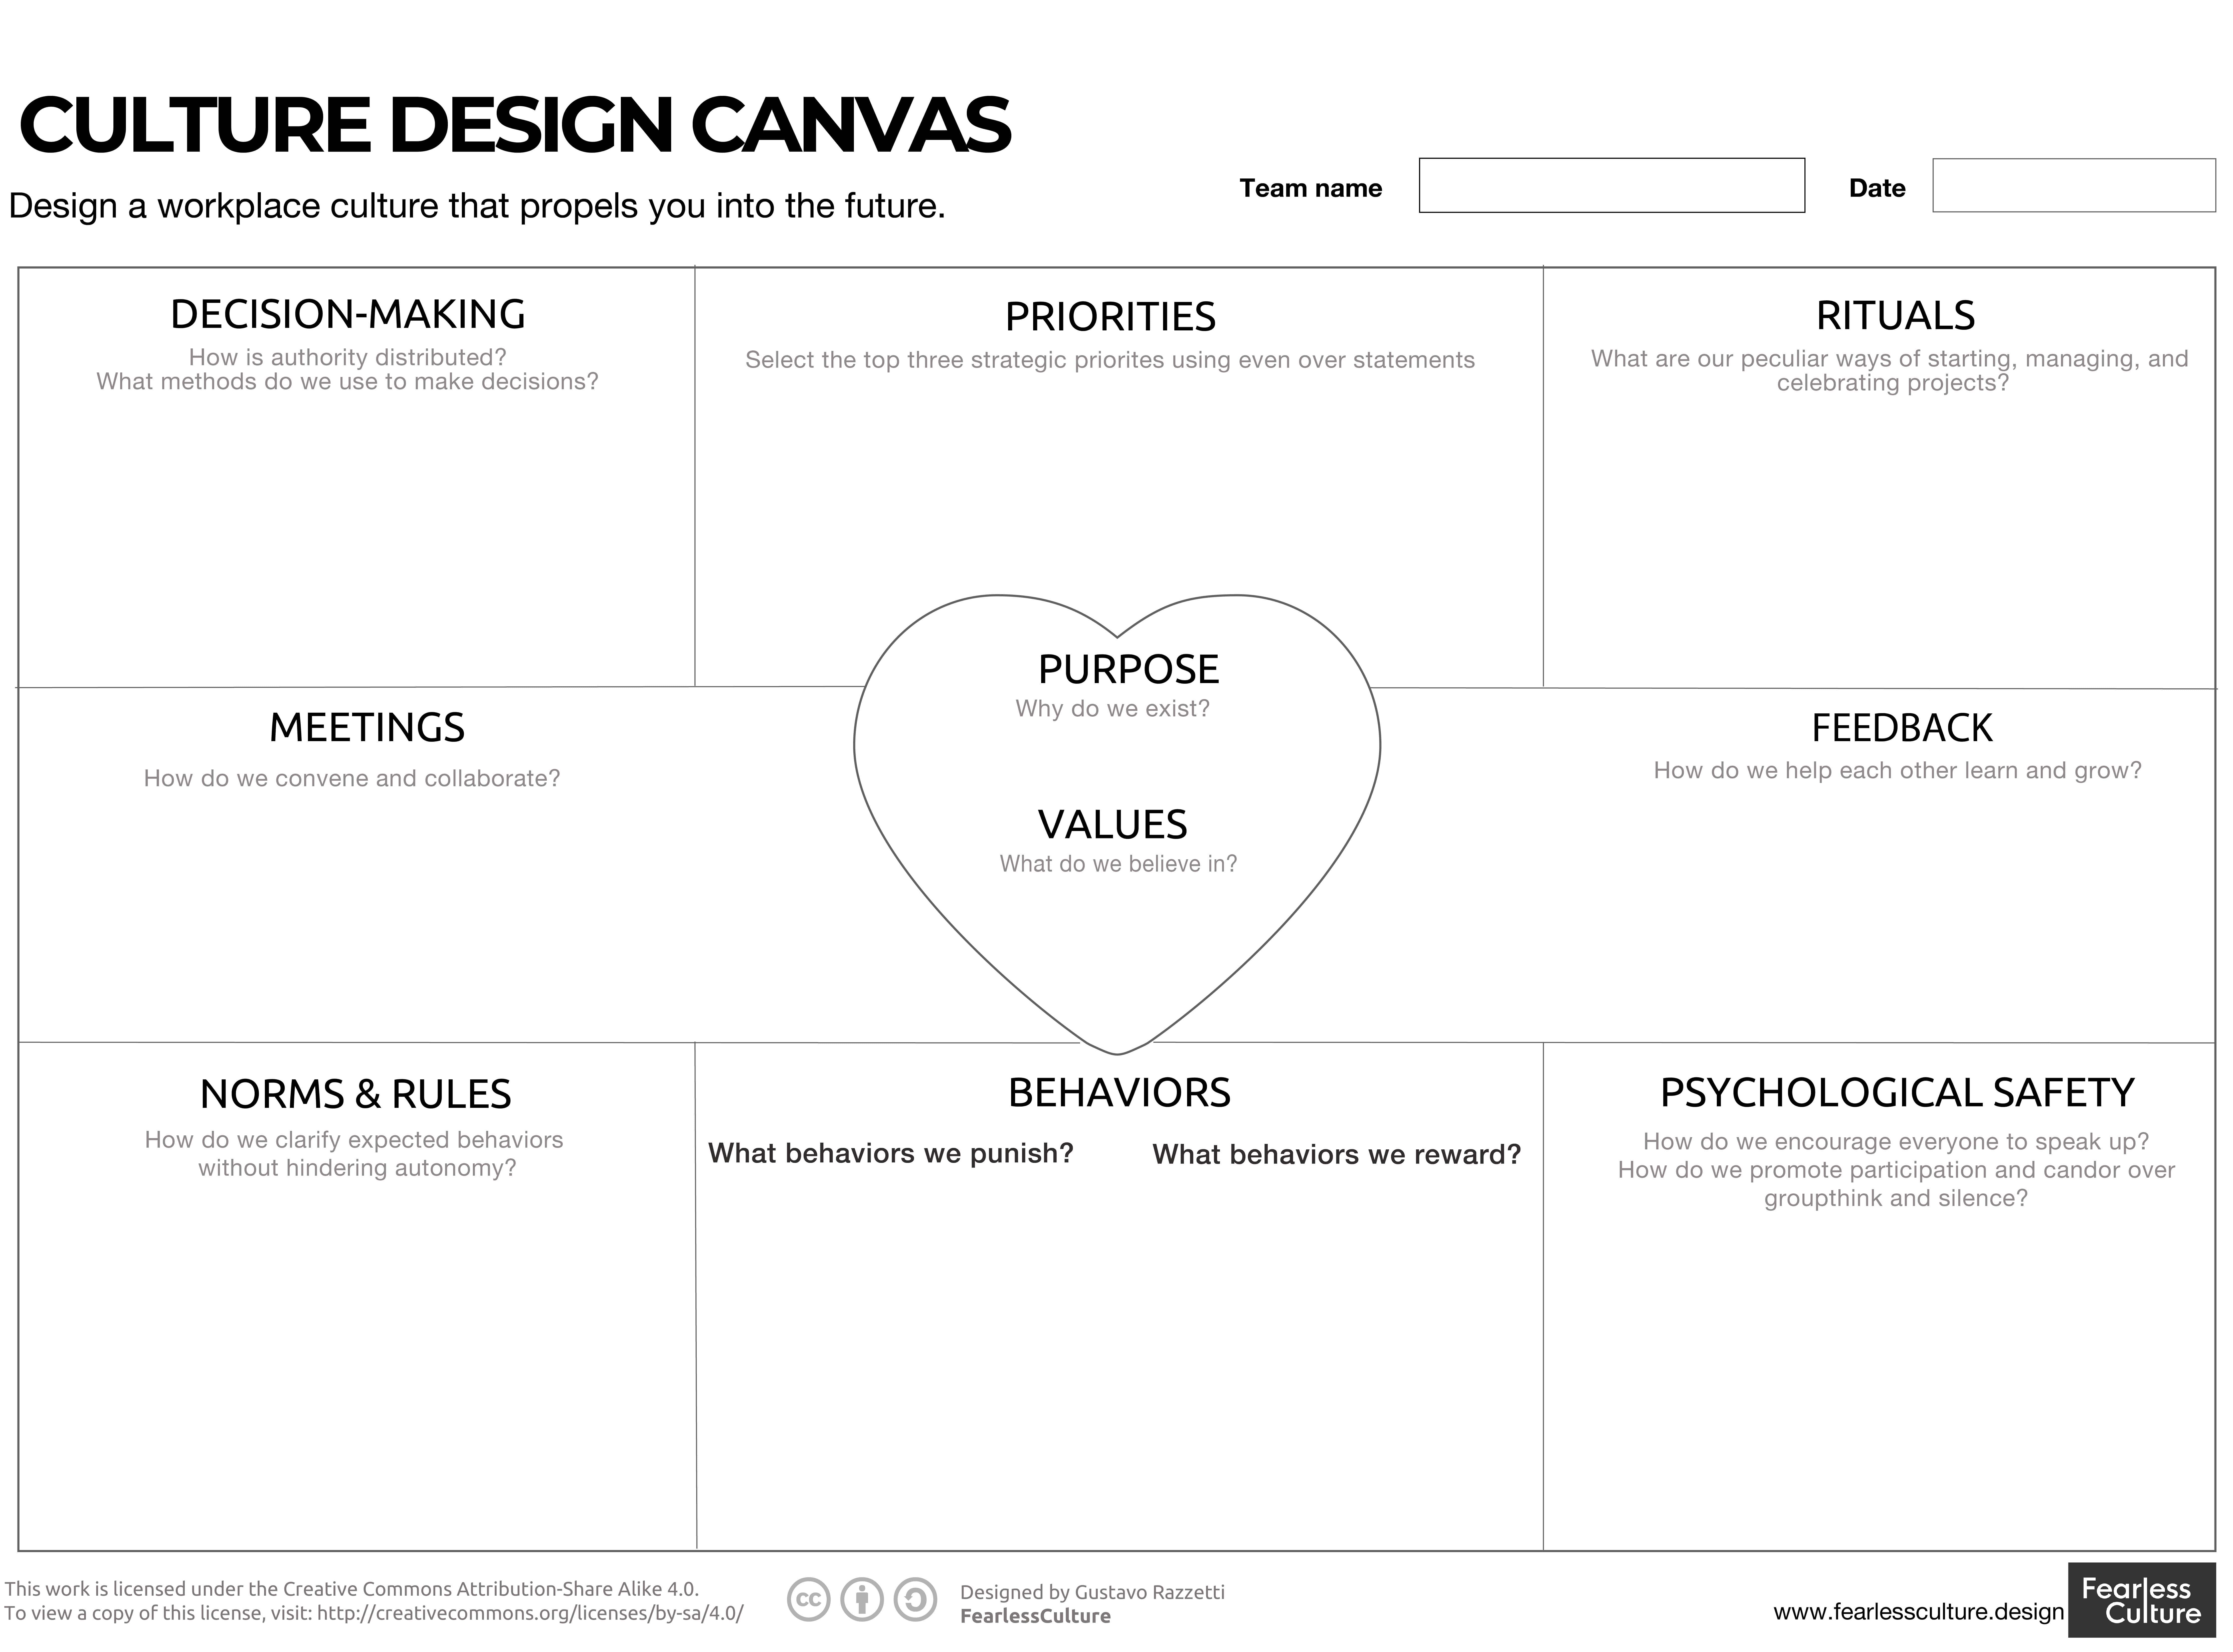 the culture design canvas is a mapping tool to visualize your current company and team culture and design your future workplace culture